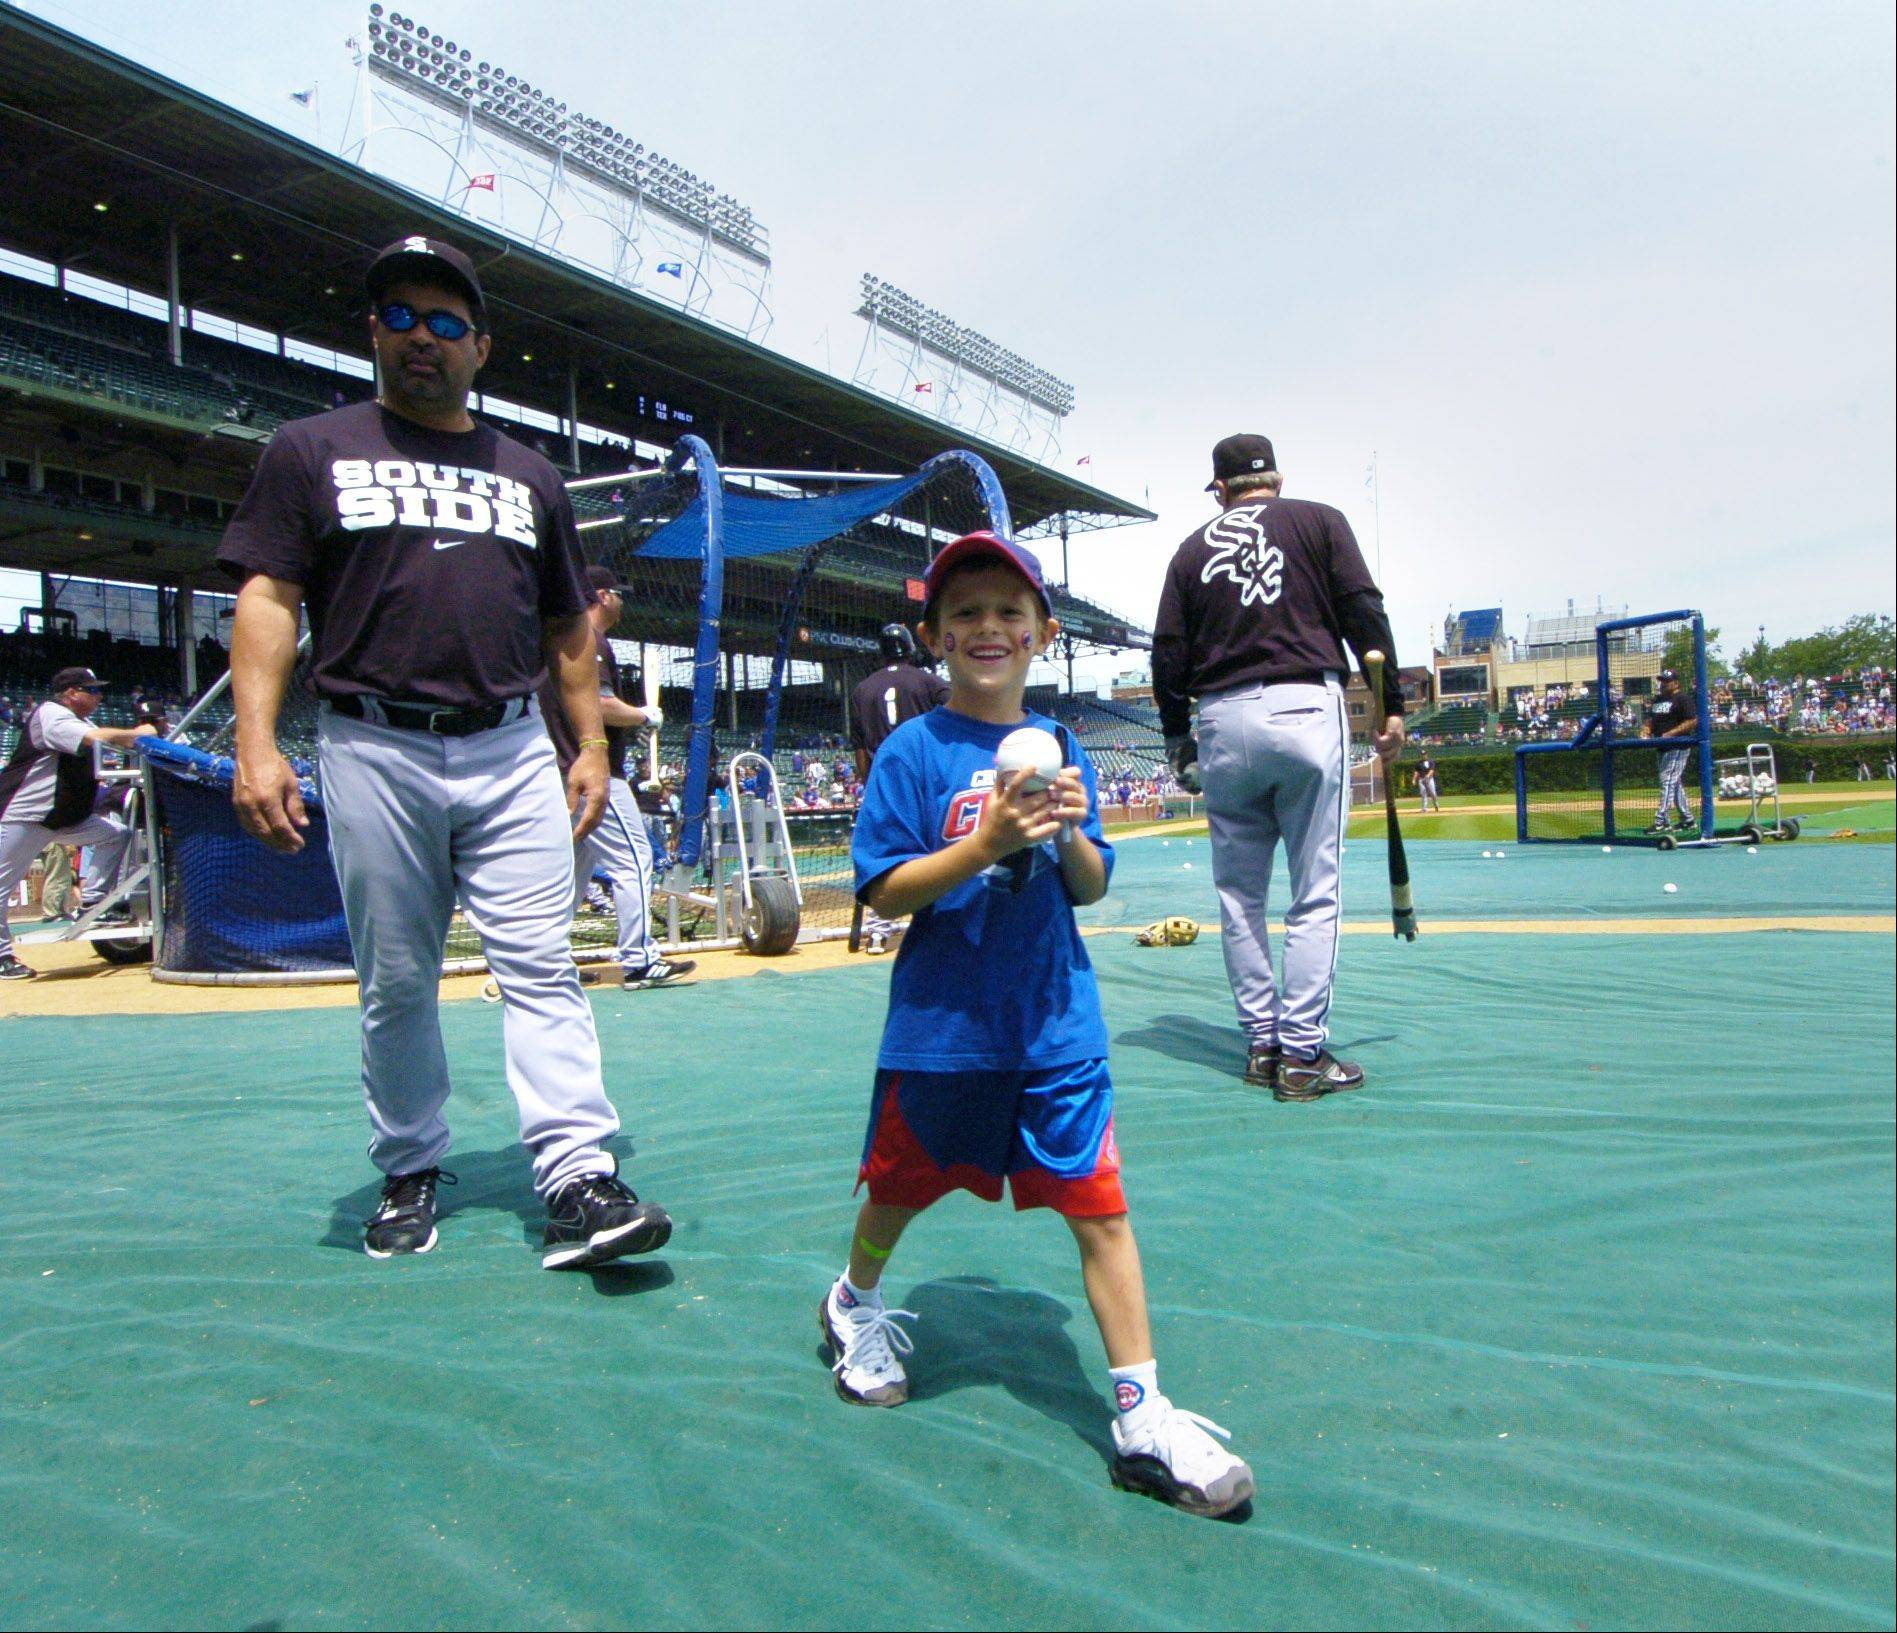 White Sox Manager Ozzie Guillen walks off the field with Cubs fan Trevor Anglin, 6, of Carterville, Ill. after giving him a quick tour of the Sox's batting practice before Sunday's game at Wrigley Field.